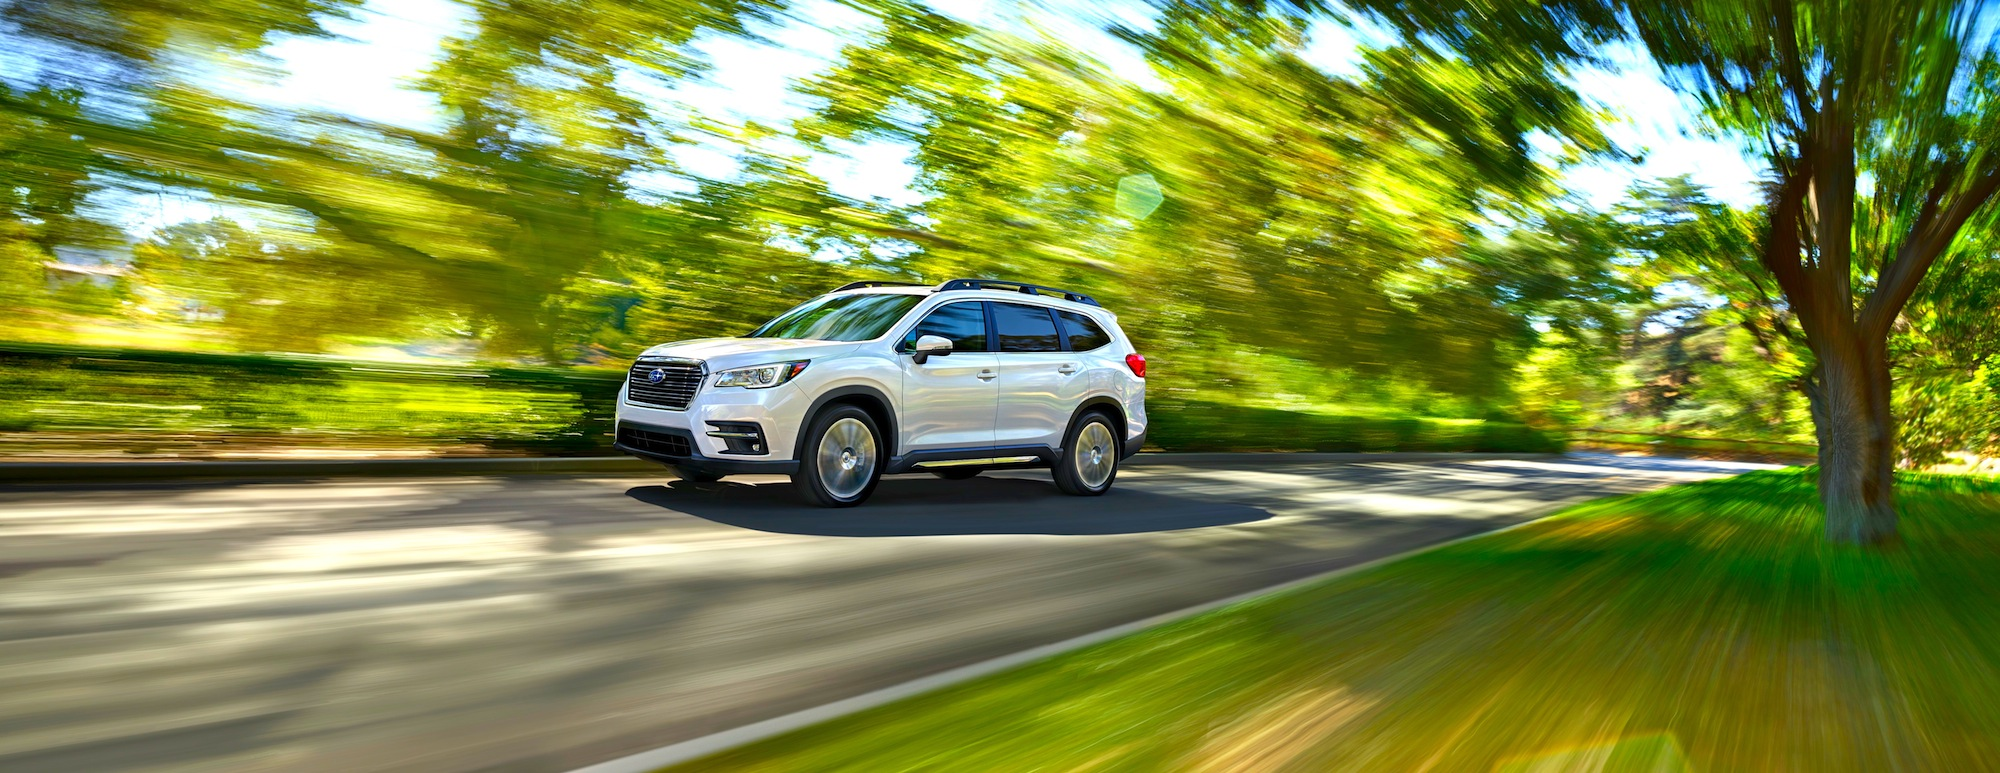 2019 Subaru Ascent: Three-Row SUV Is The Biggest Subaru Ever